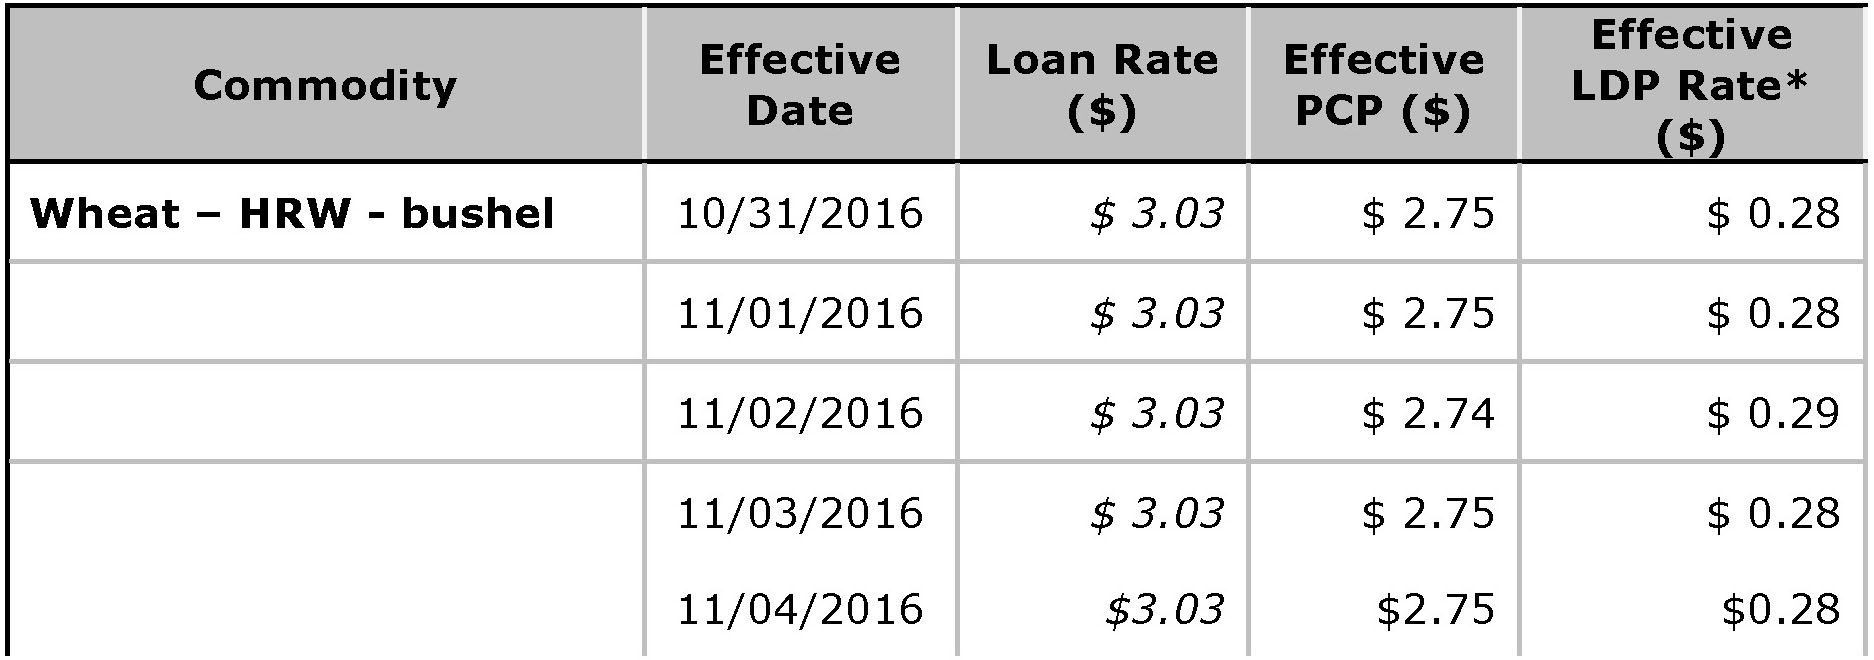 USDA Loan Deficiency Payment - November 4, 2016 - wheat